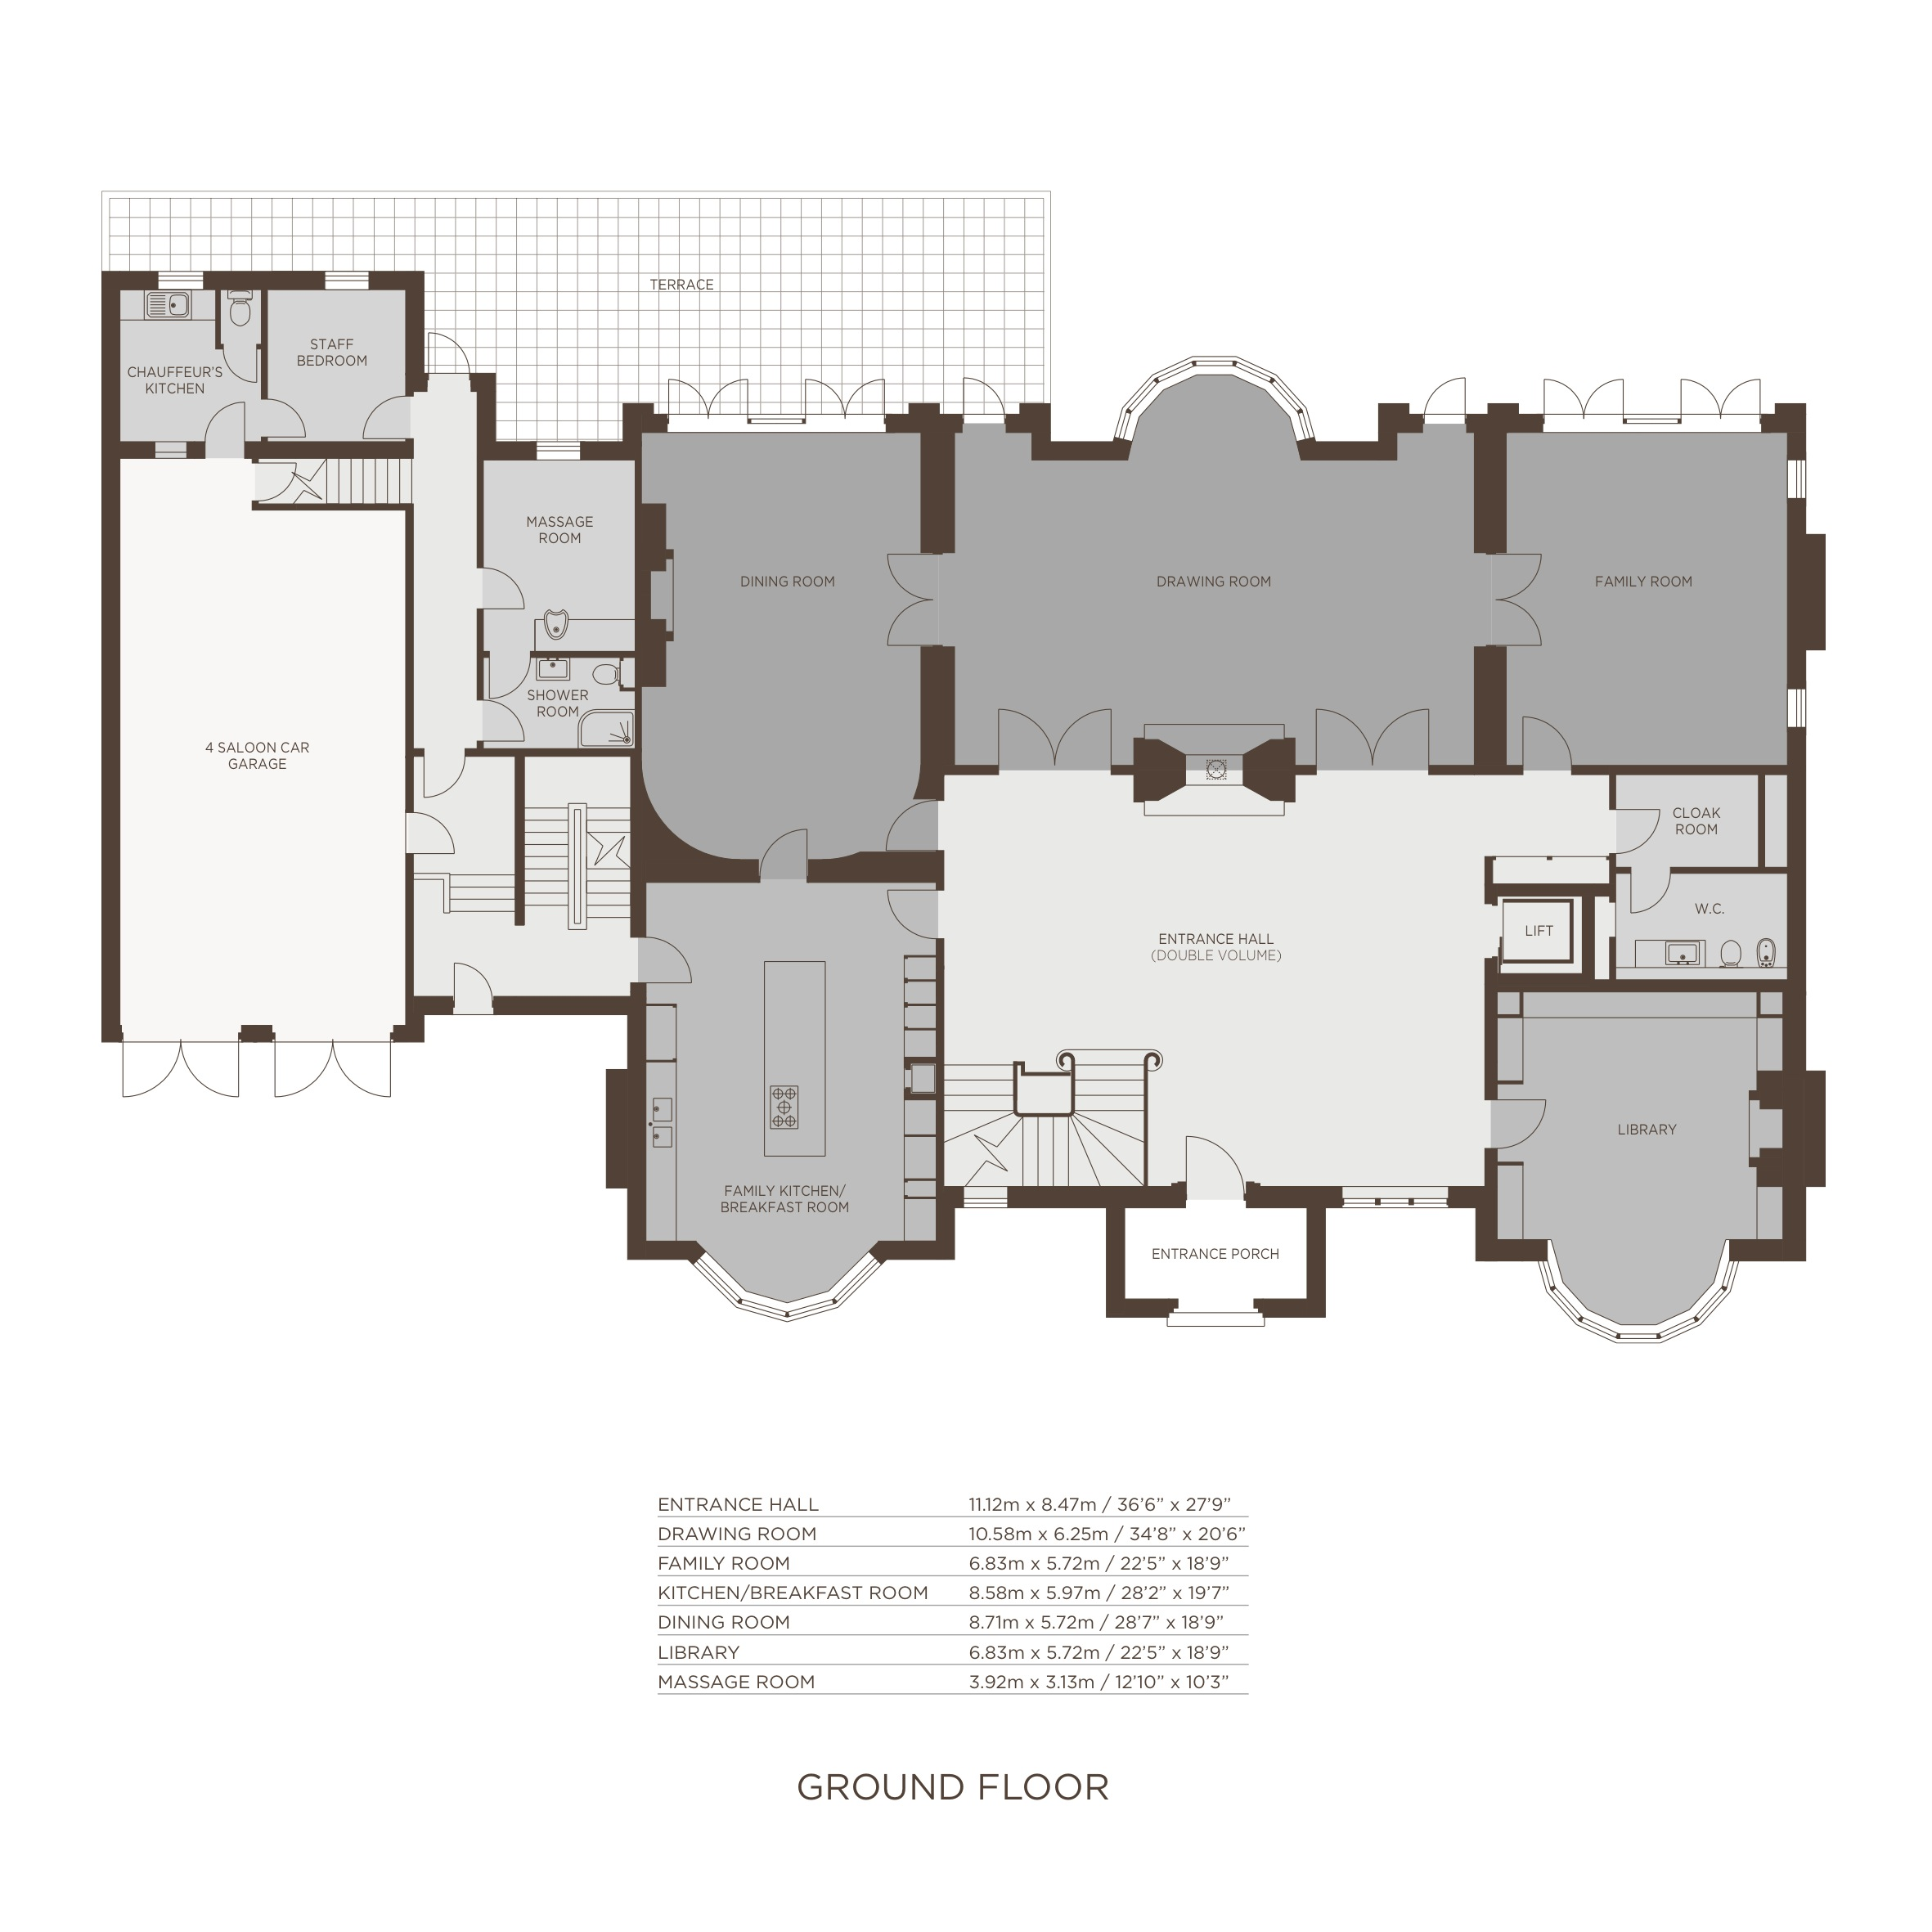 Jersey house floor plans the bishops avenue barnet london for House design london